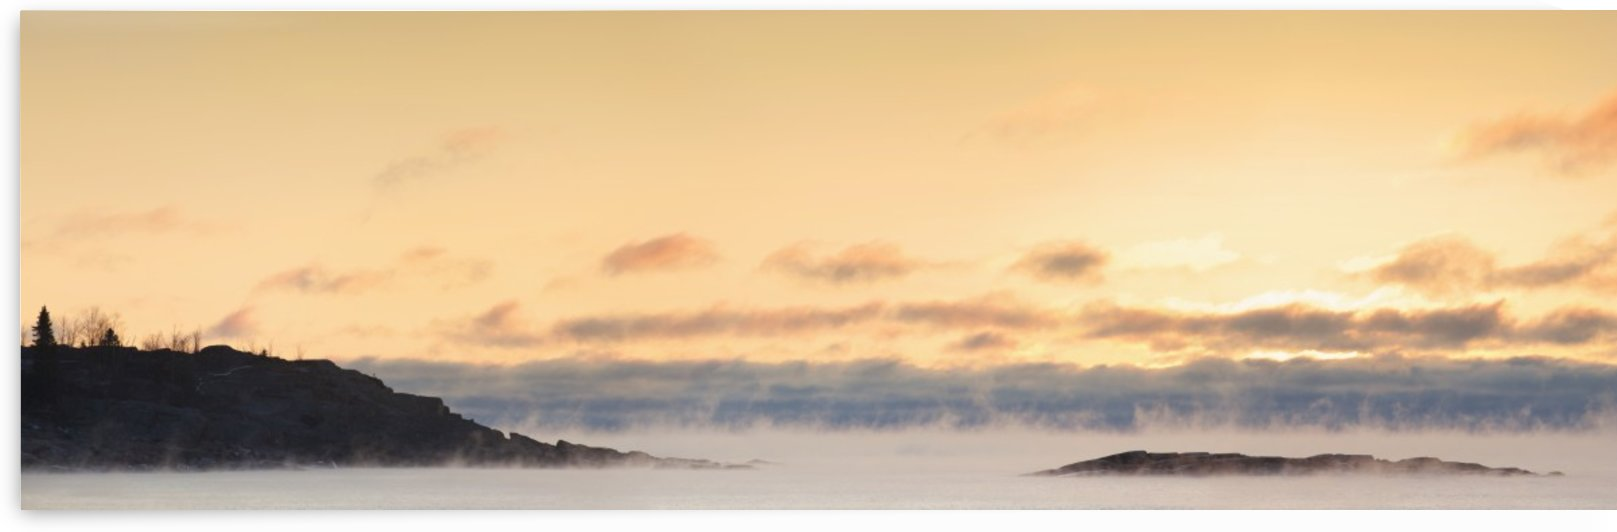 Winter Mist On Lake Superior At Sunrise; Terrace Bay, Ontario, Canada by PacificStock